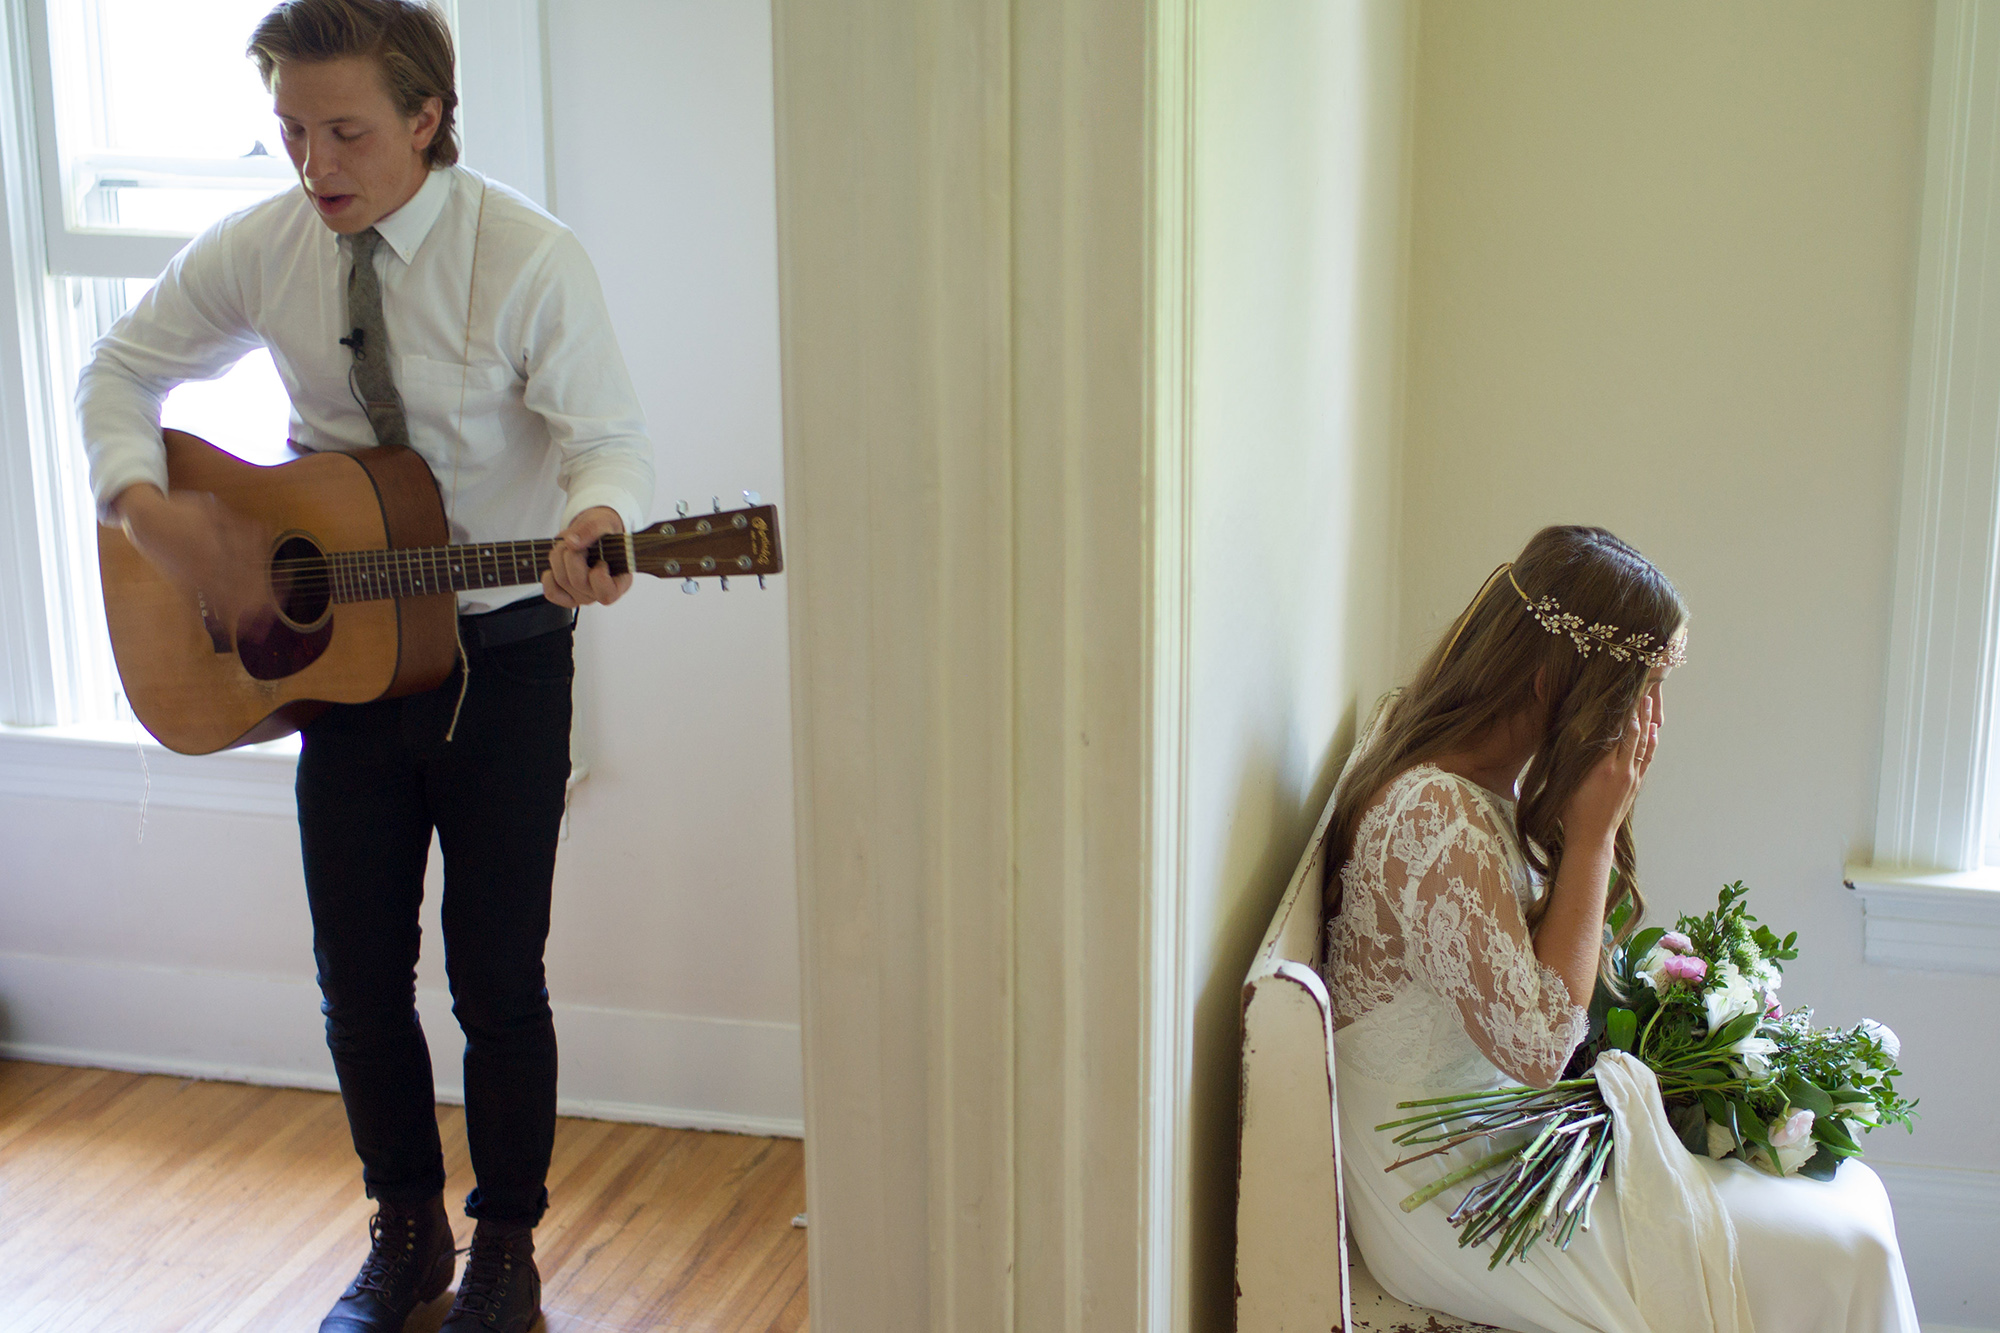 A groom is playing the guitar for his bride, who is sitting on a chair in the next room.